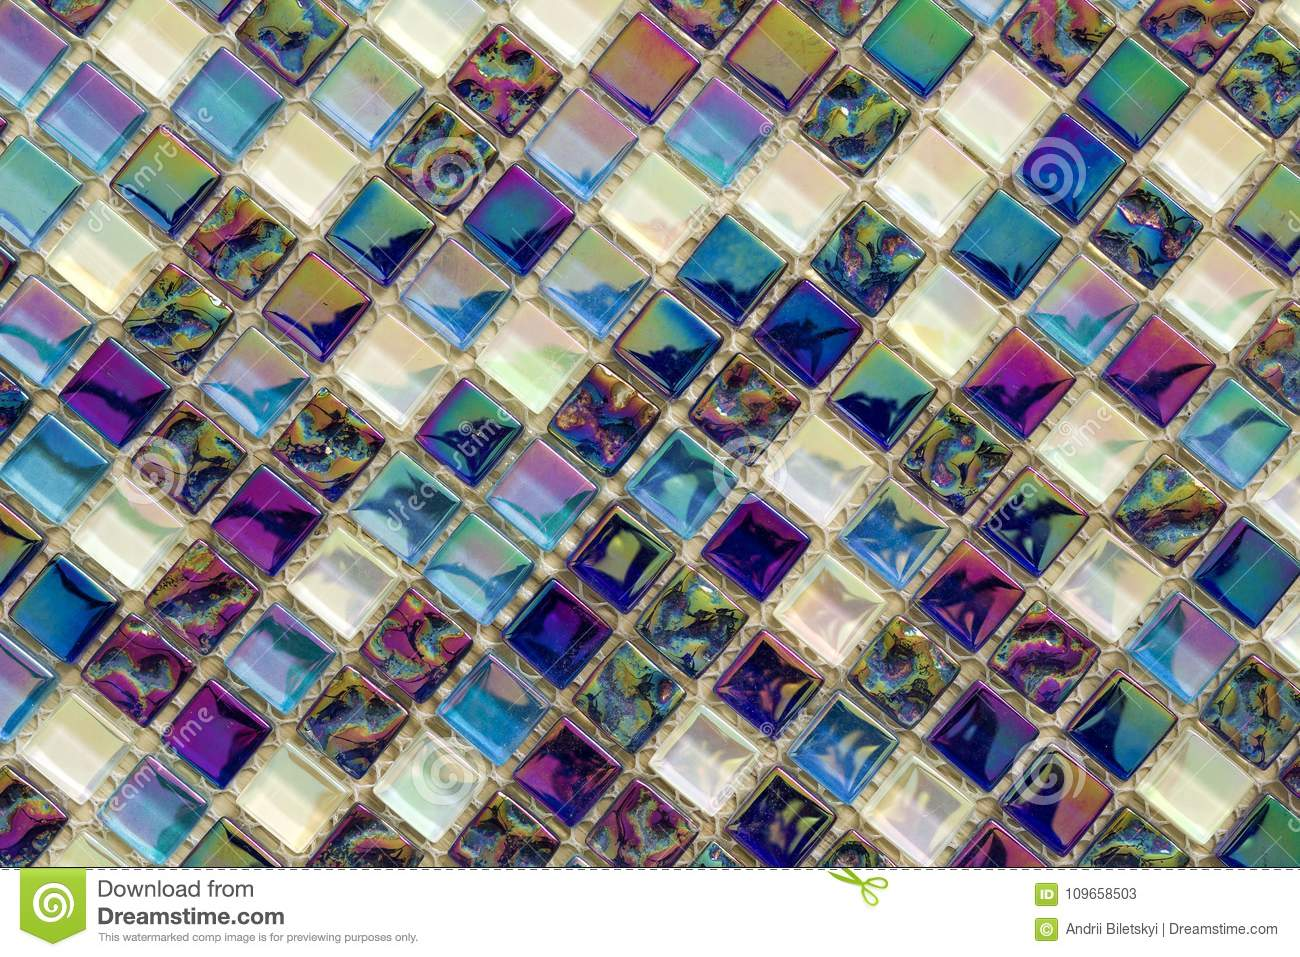 Geometric blue, purple and green mosaic tiles pattern. Wallpaper texture background. Small pieces tiles for construction and renov